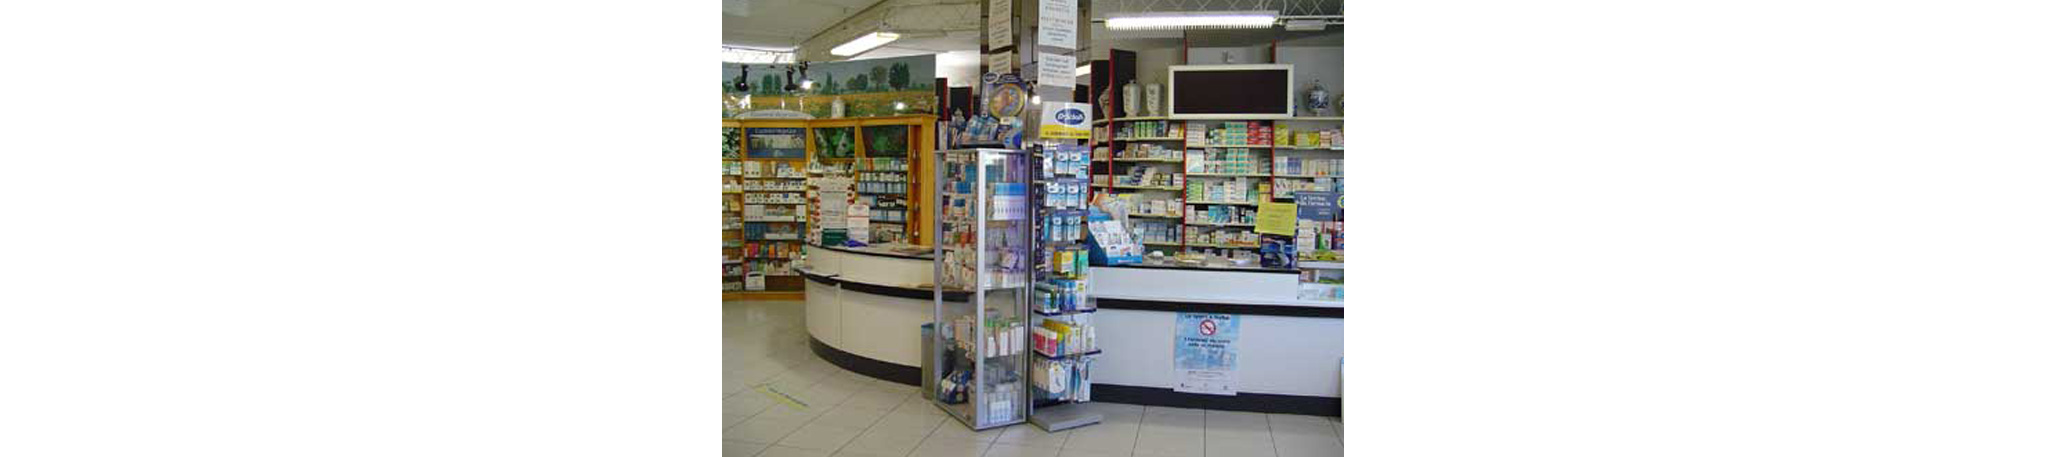 farmacia-goso-vallecrosia